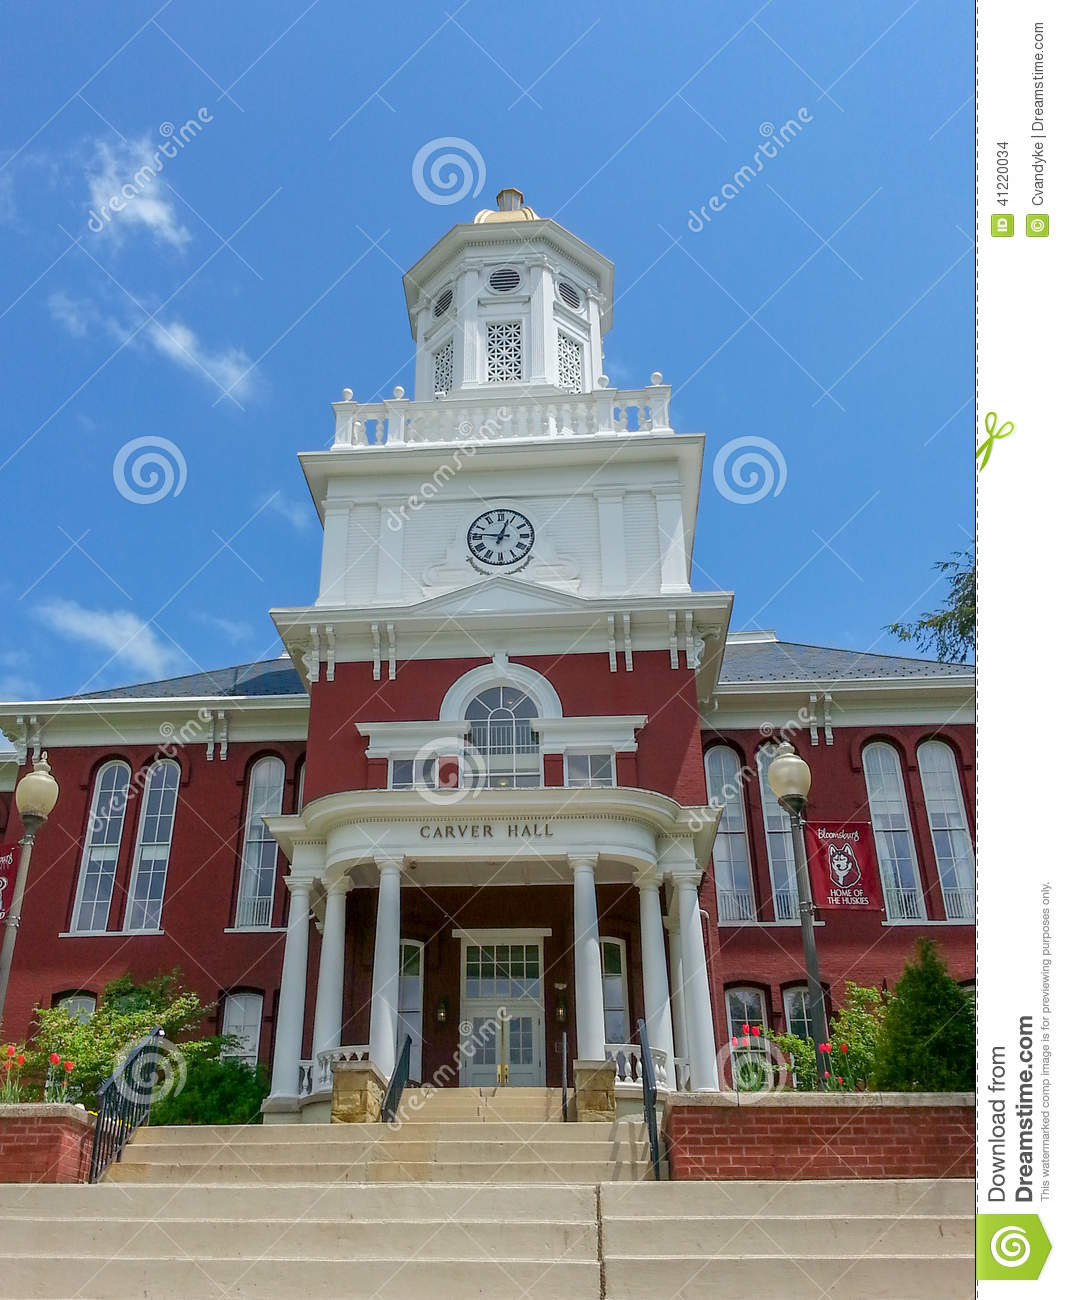 Carver Hall Bloomsburg University Pennsylvania Stock Photo - Image ...